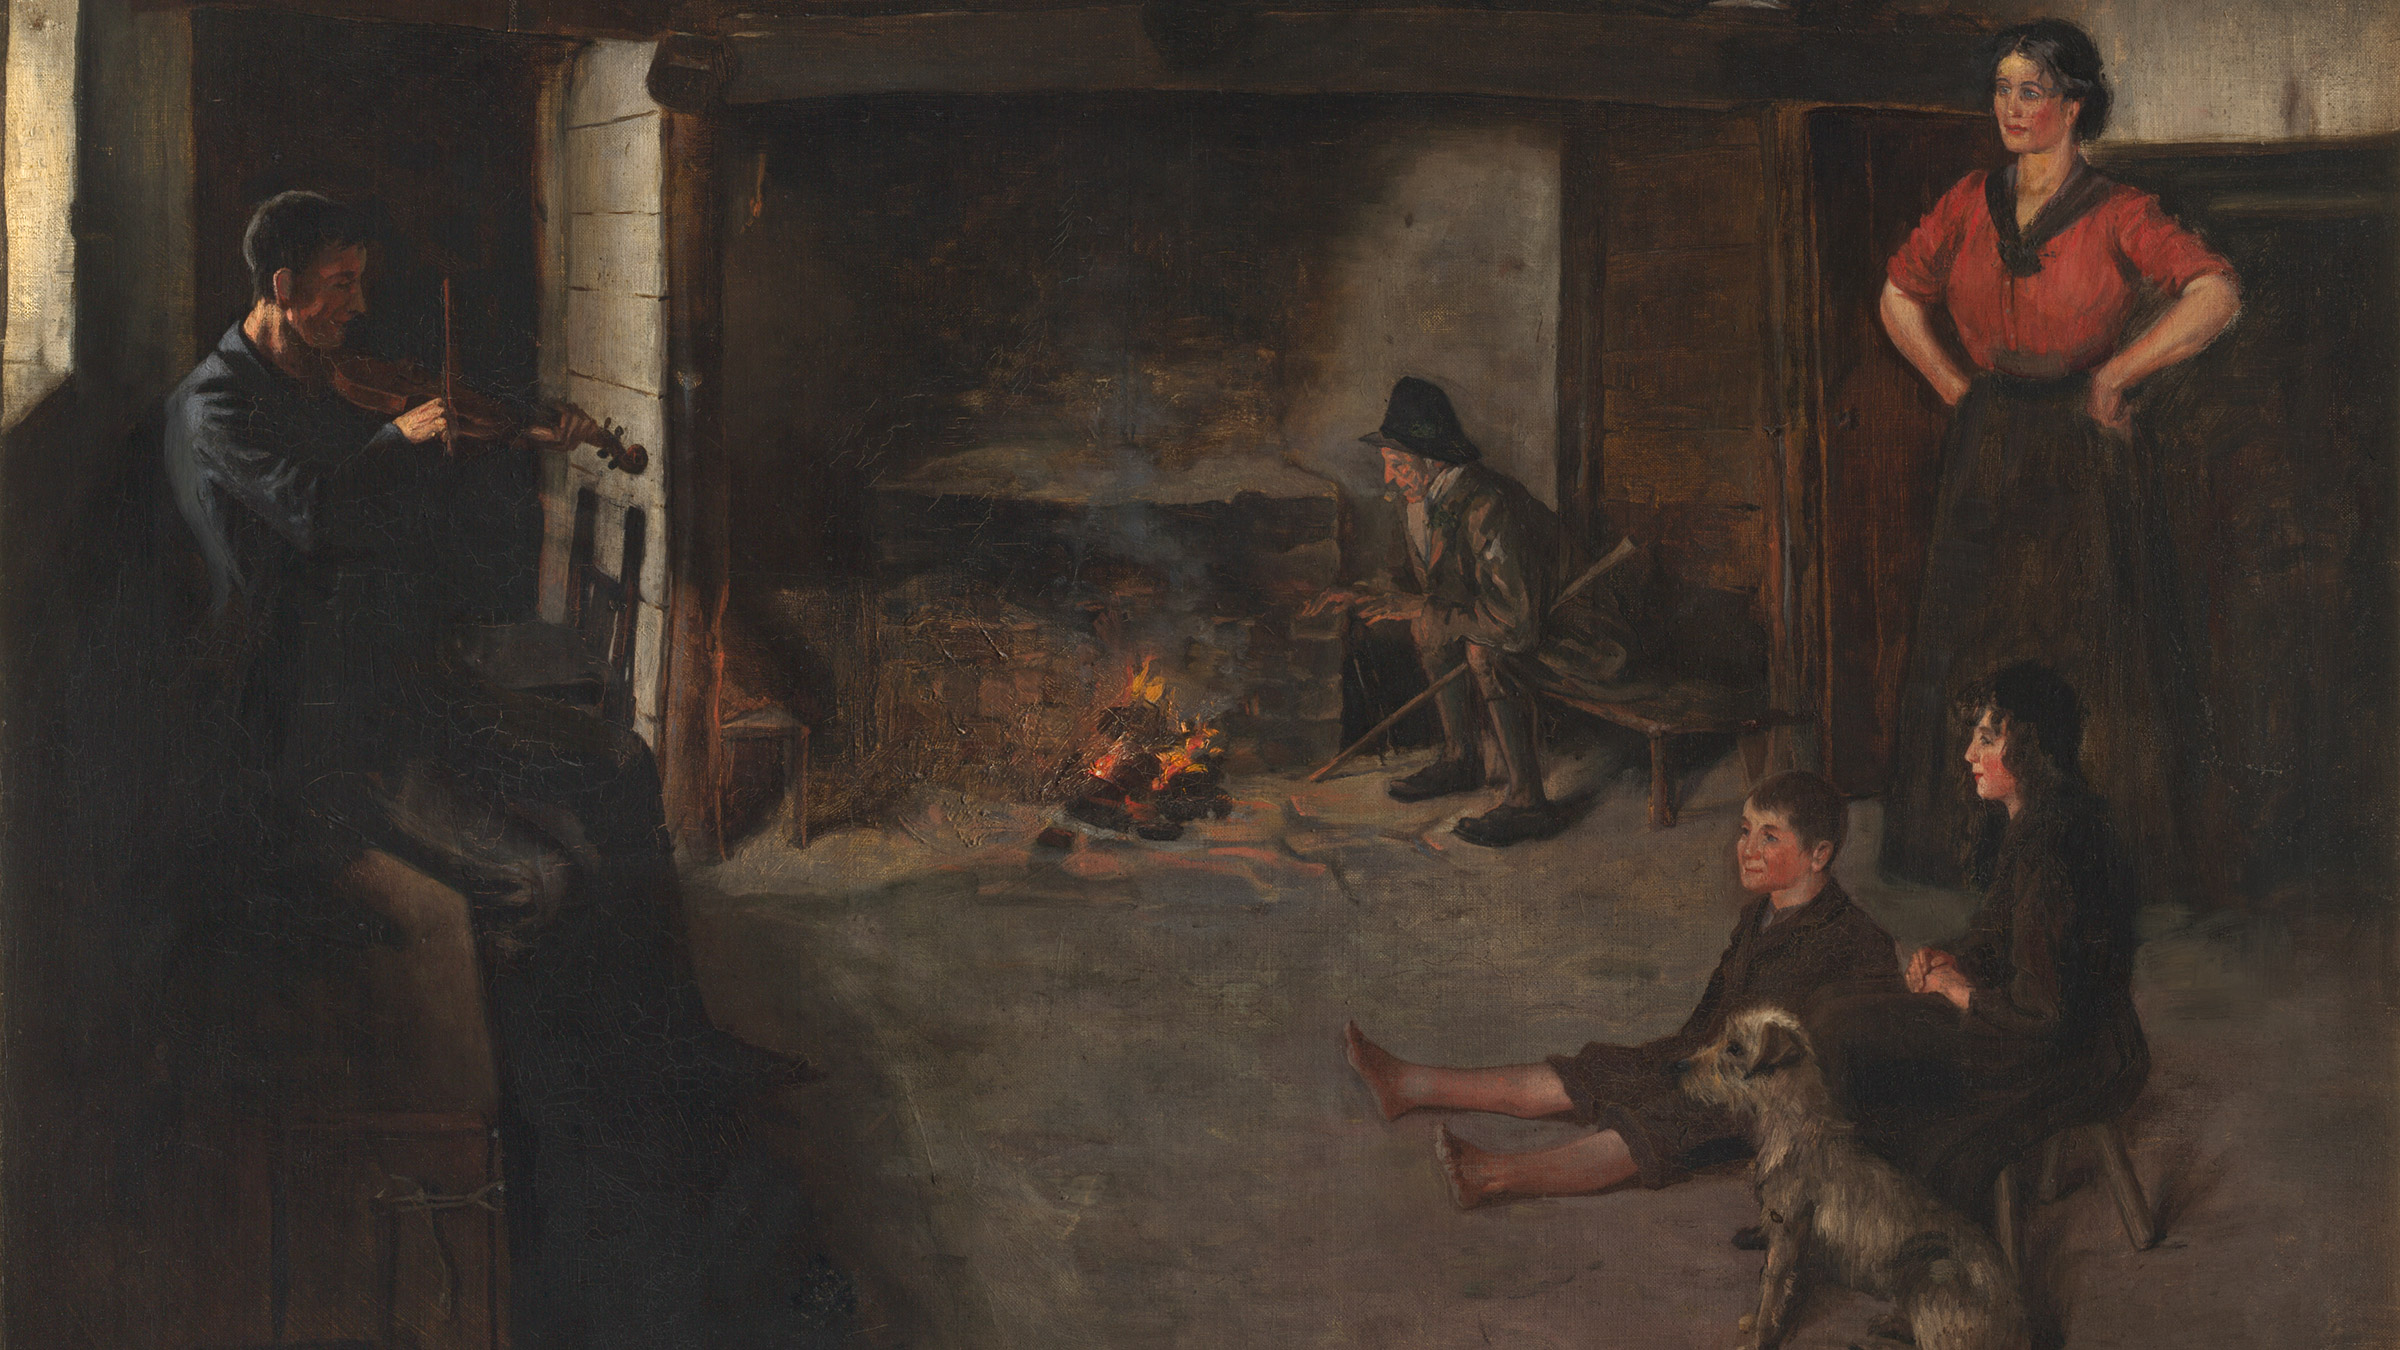 Lest We Forget (Irish Cottage Interior c.1860). Oil on canvas. Date unknown. Photo by Frank Poole. Irish School. Copyright Frank Poole 2012.